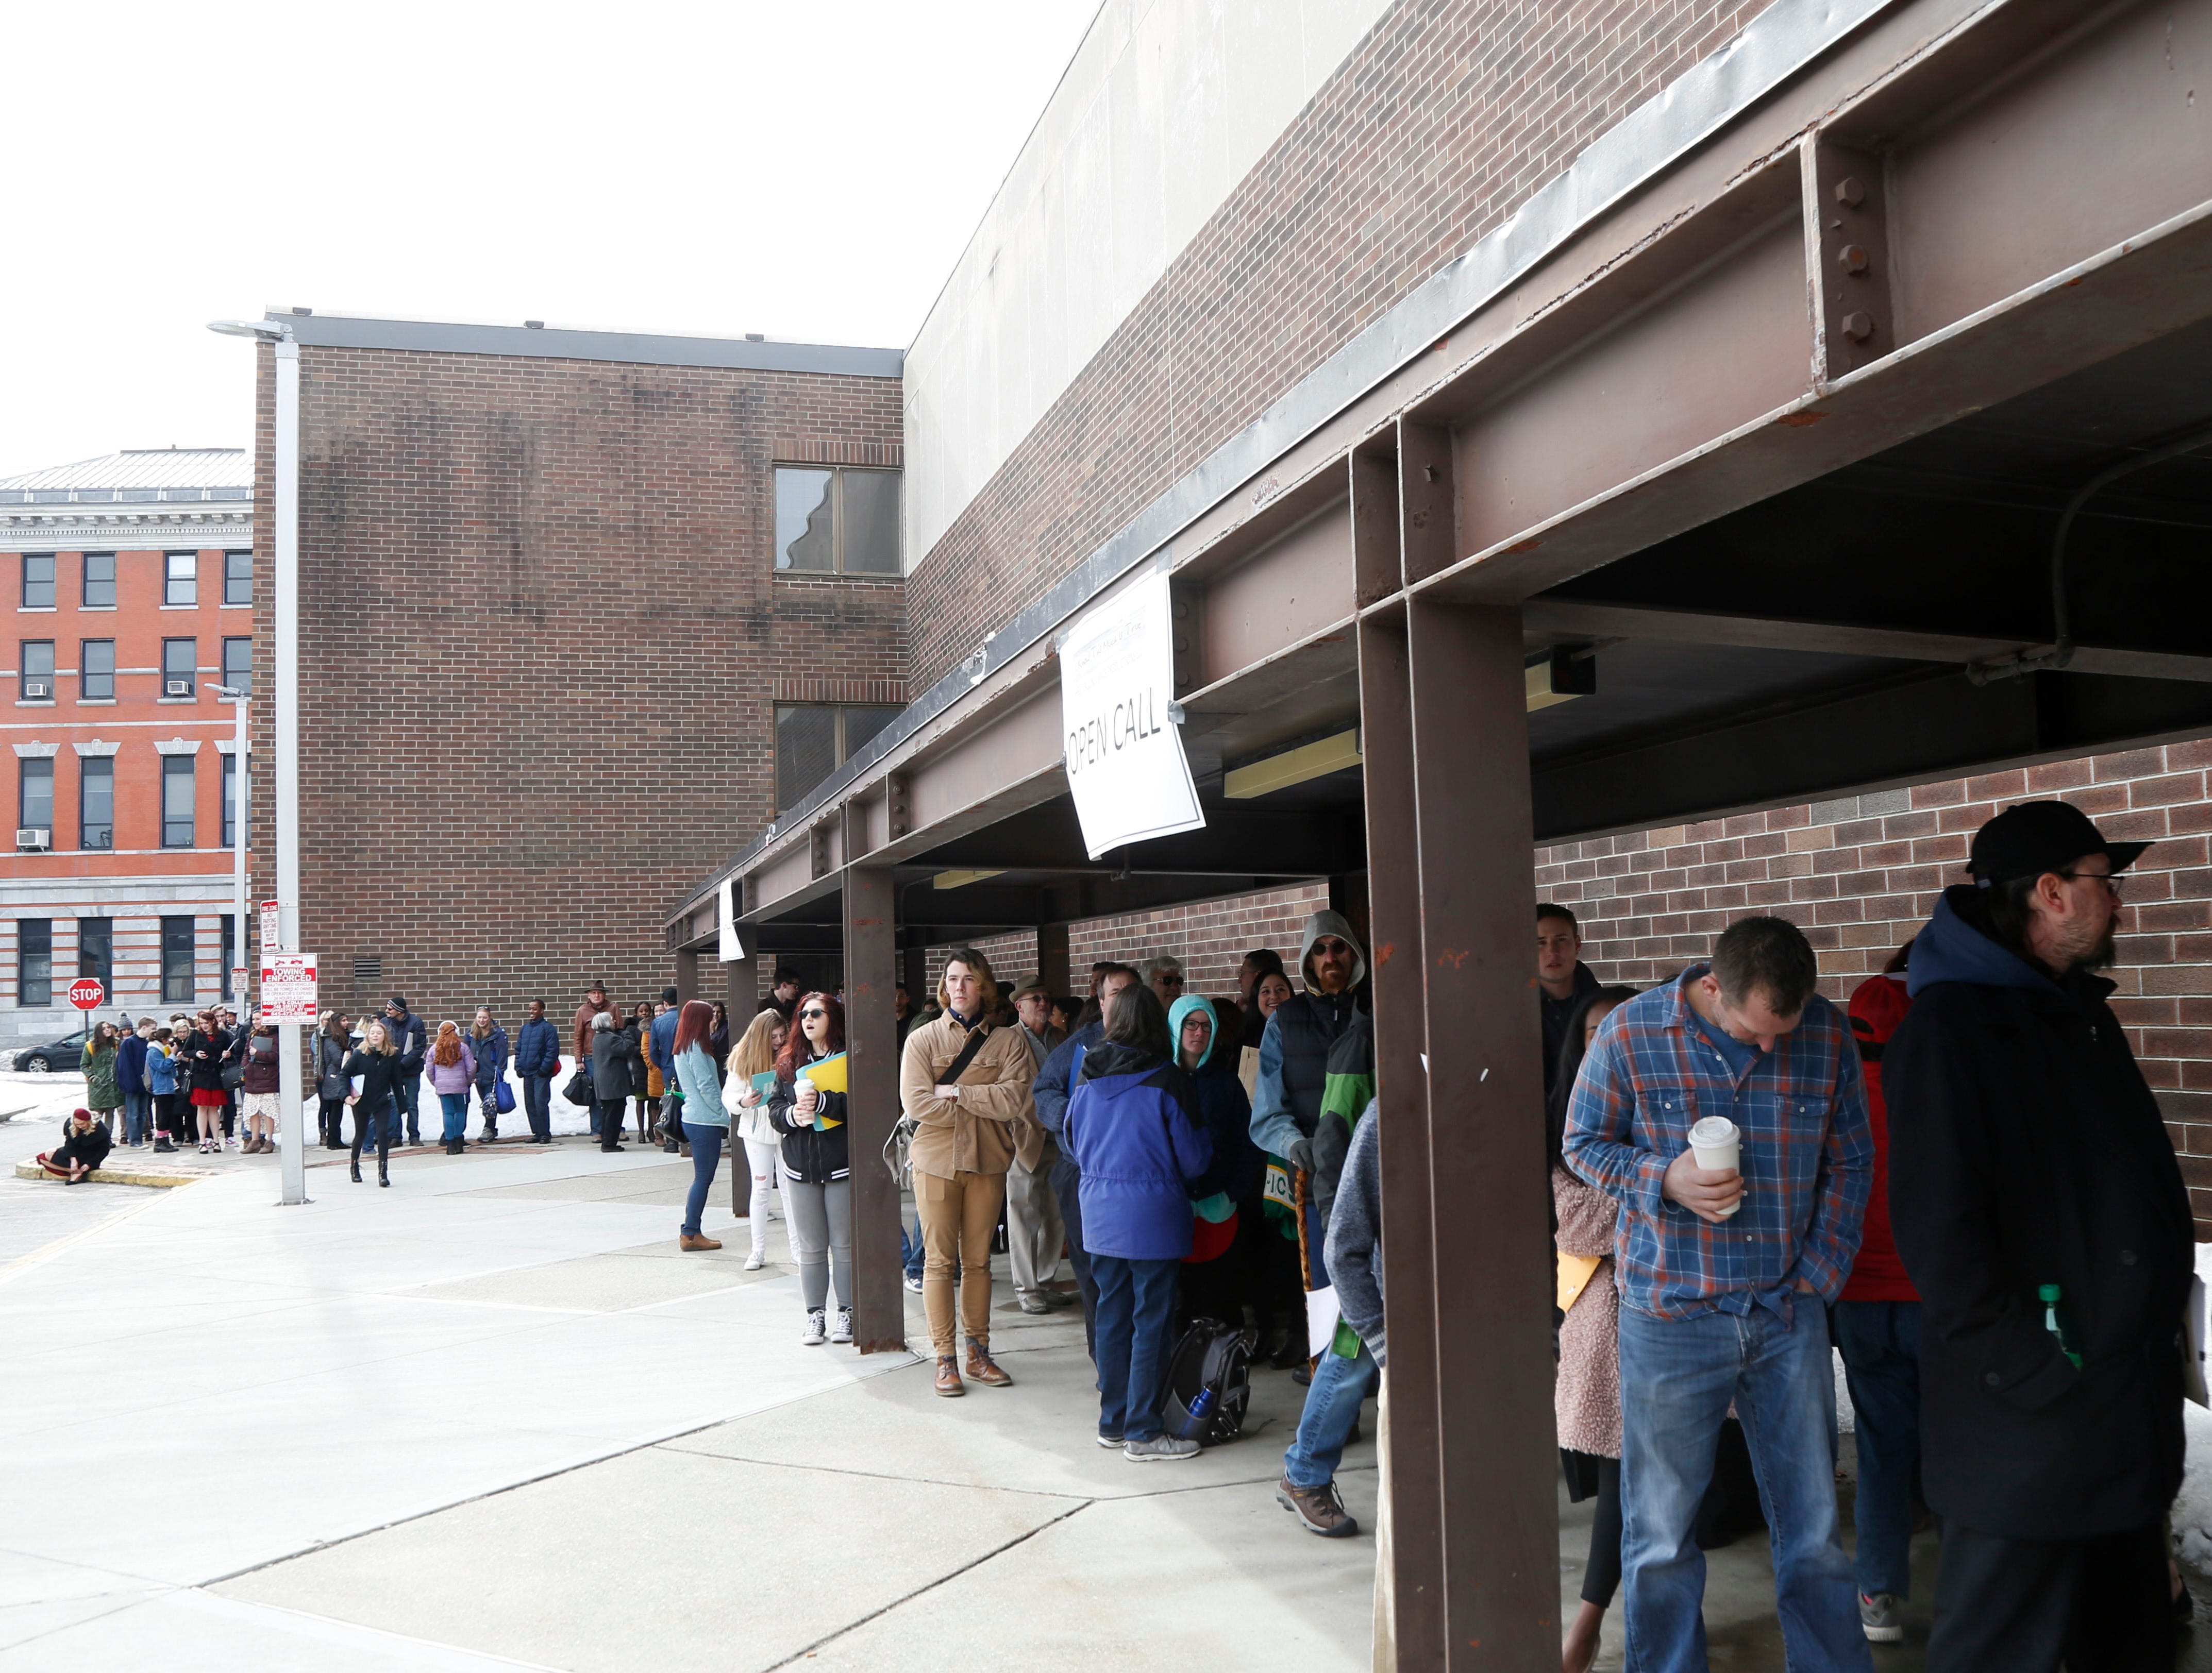 """A long line of candidates waits outside the Majed J. Nesheiwat Convention Center for Saturday's open casting call for an HBO series staring Mark Ruffalo, called """"I Know This Much is True"""" in the City of Poughkeepsie on Feb 23, 2019."""